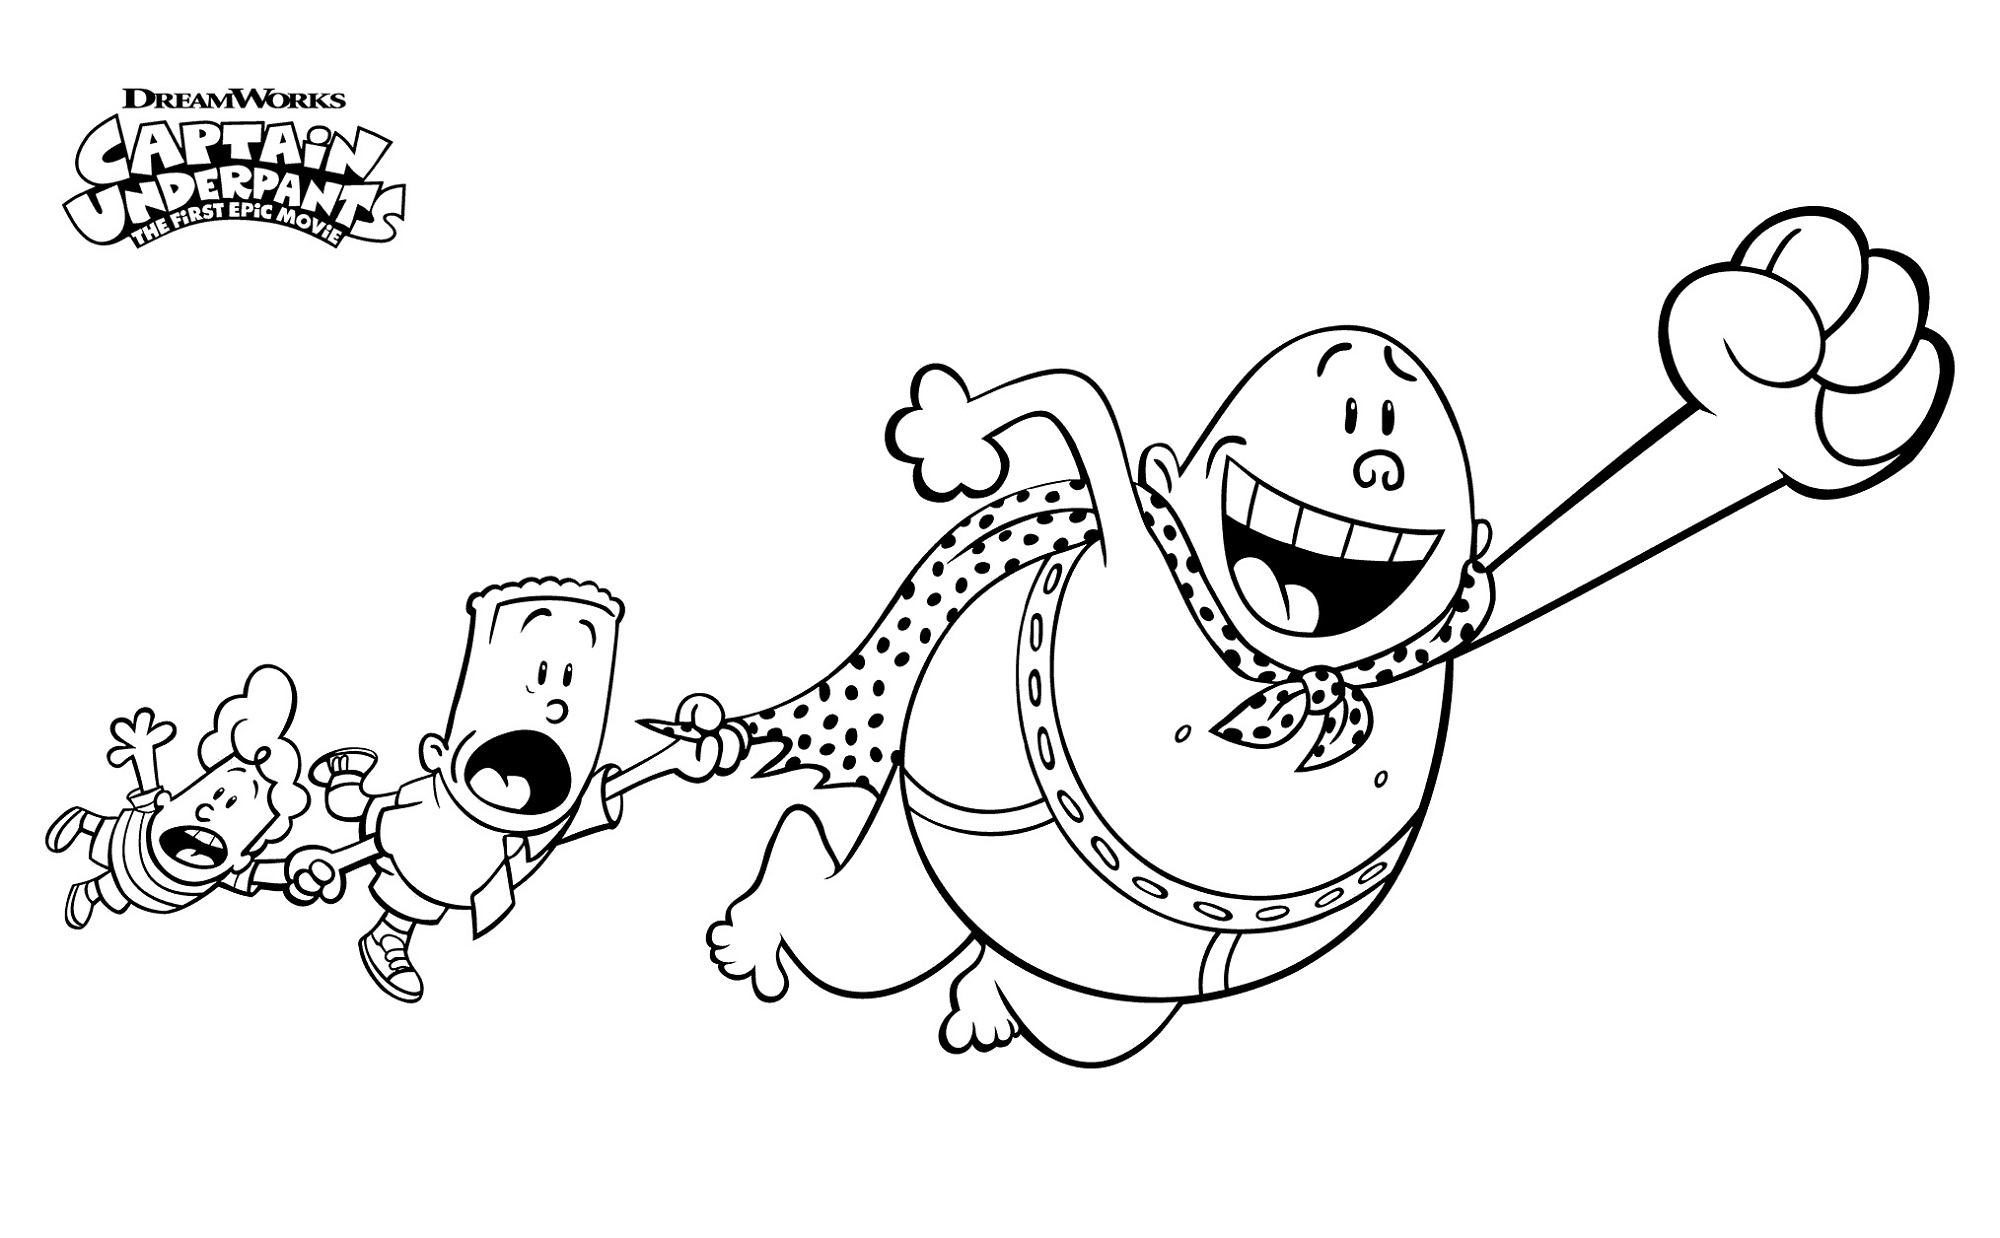 captain underpants pictures to print free captain underpants coloring pages 101 coloring captain pictures to underpants print